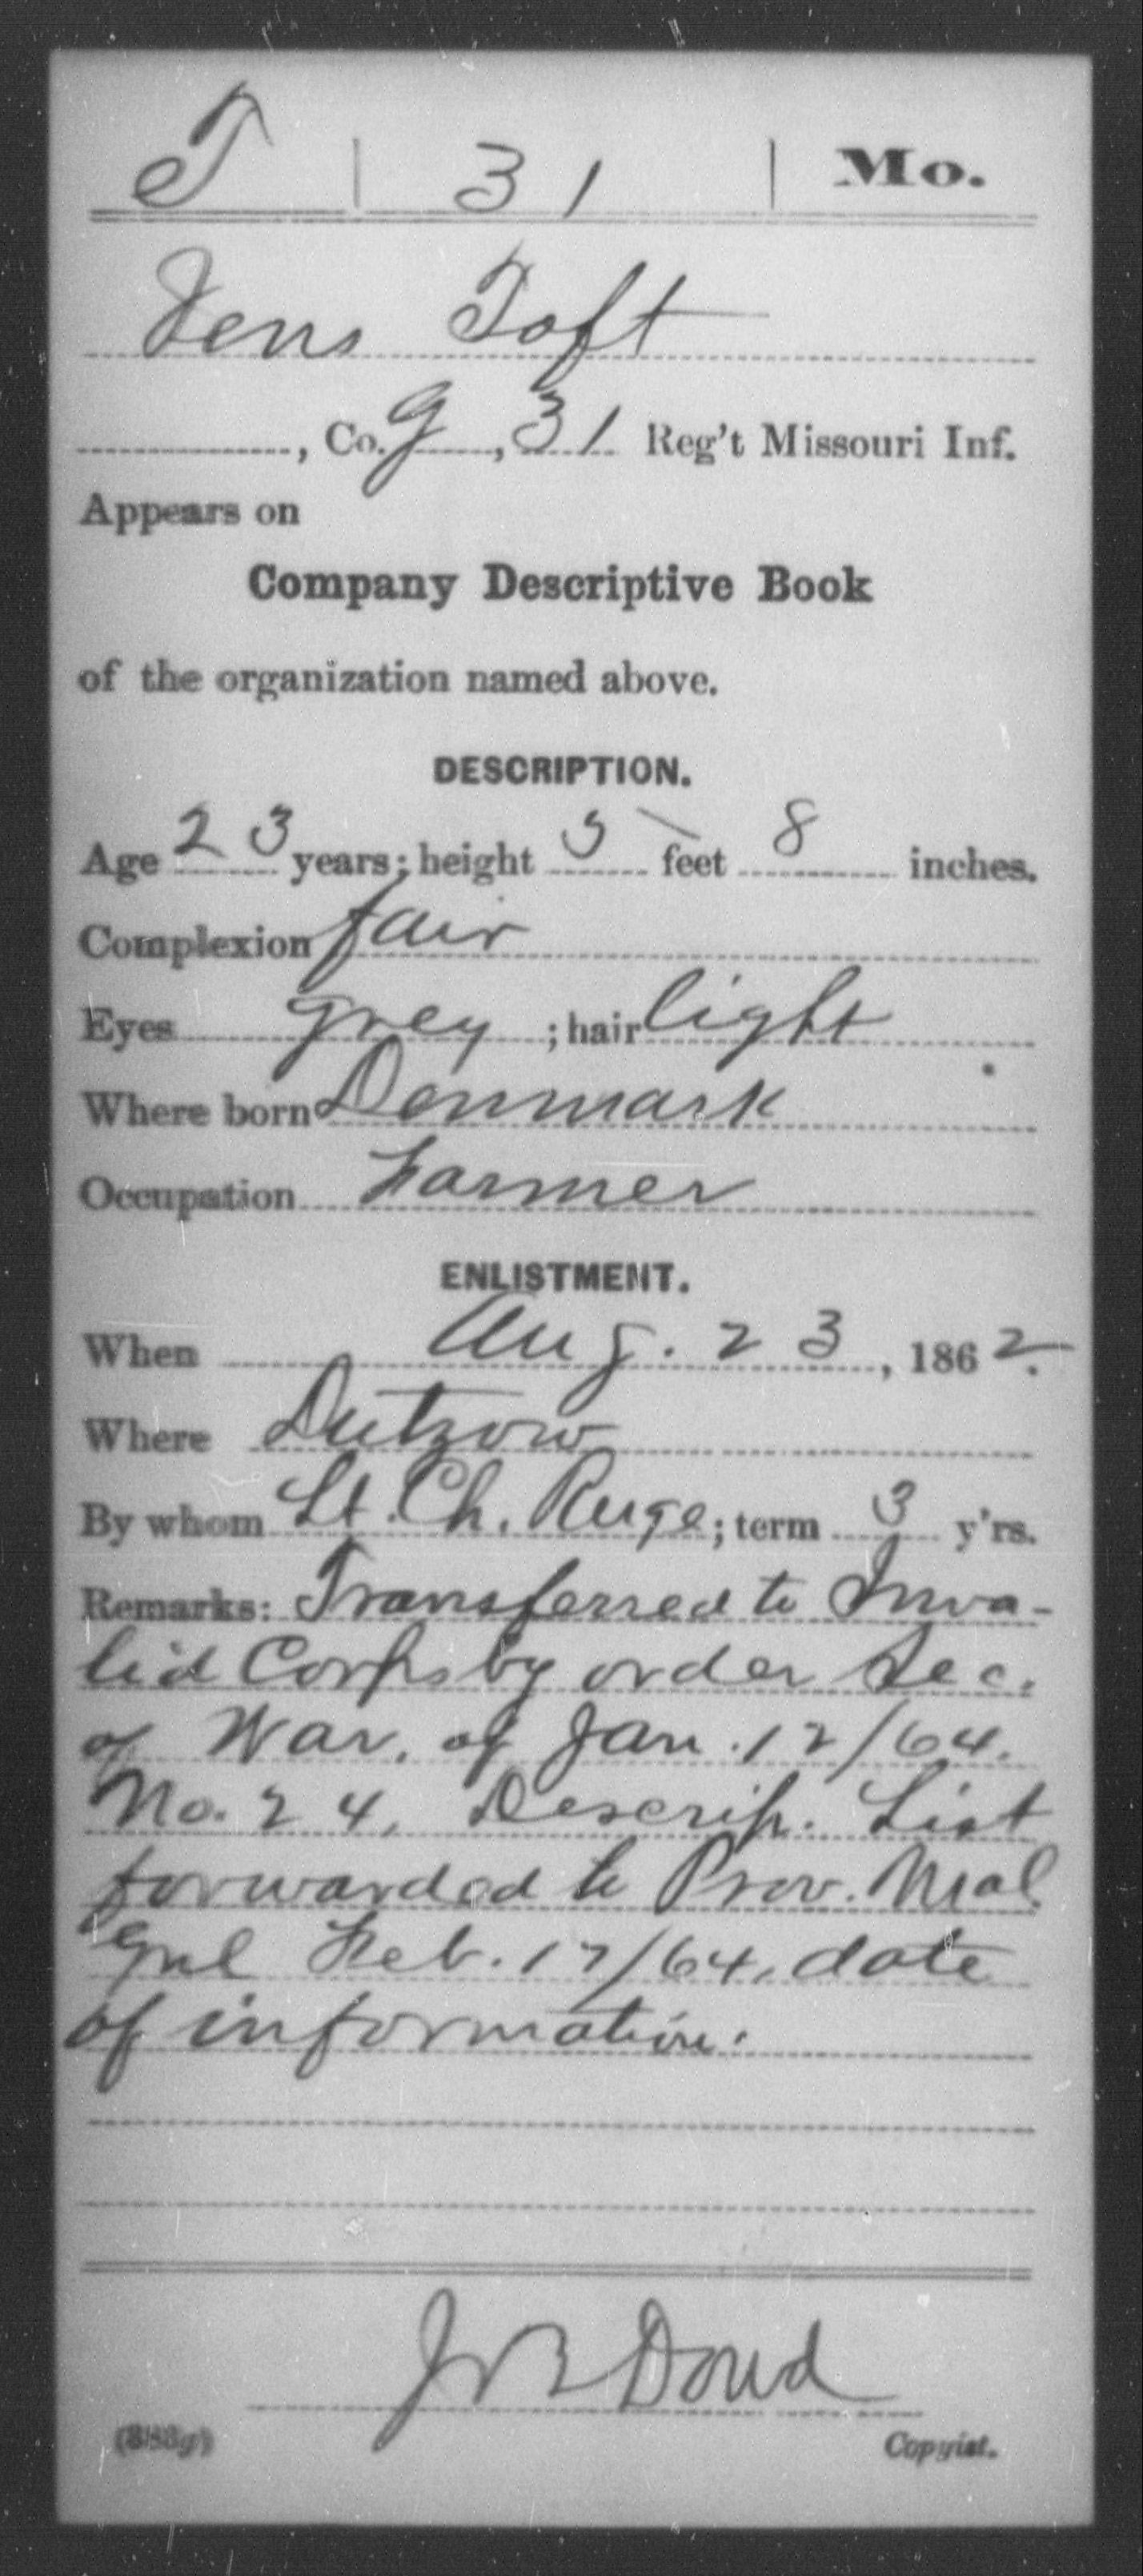 [Missouri] Toft, Jens - Age 23, Year: 1862 - Thirty-first Infantry